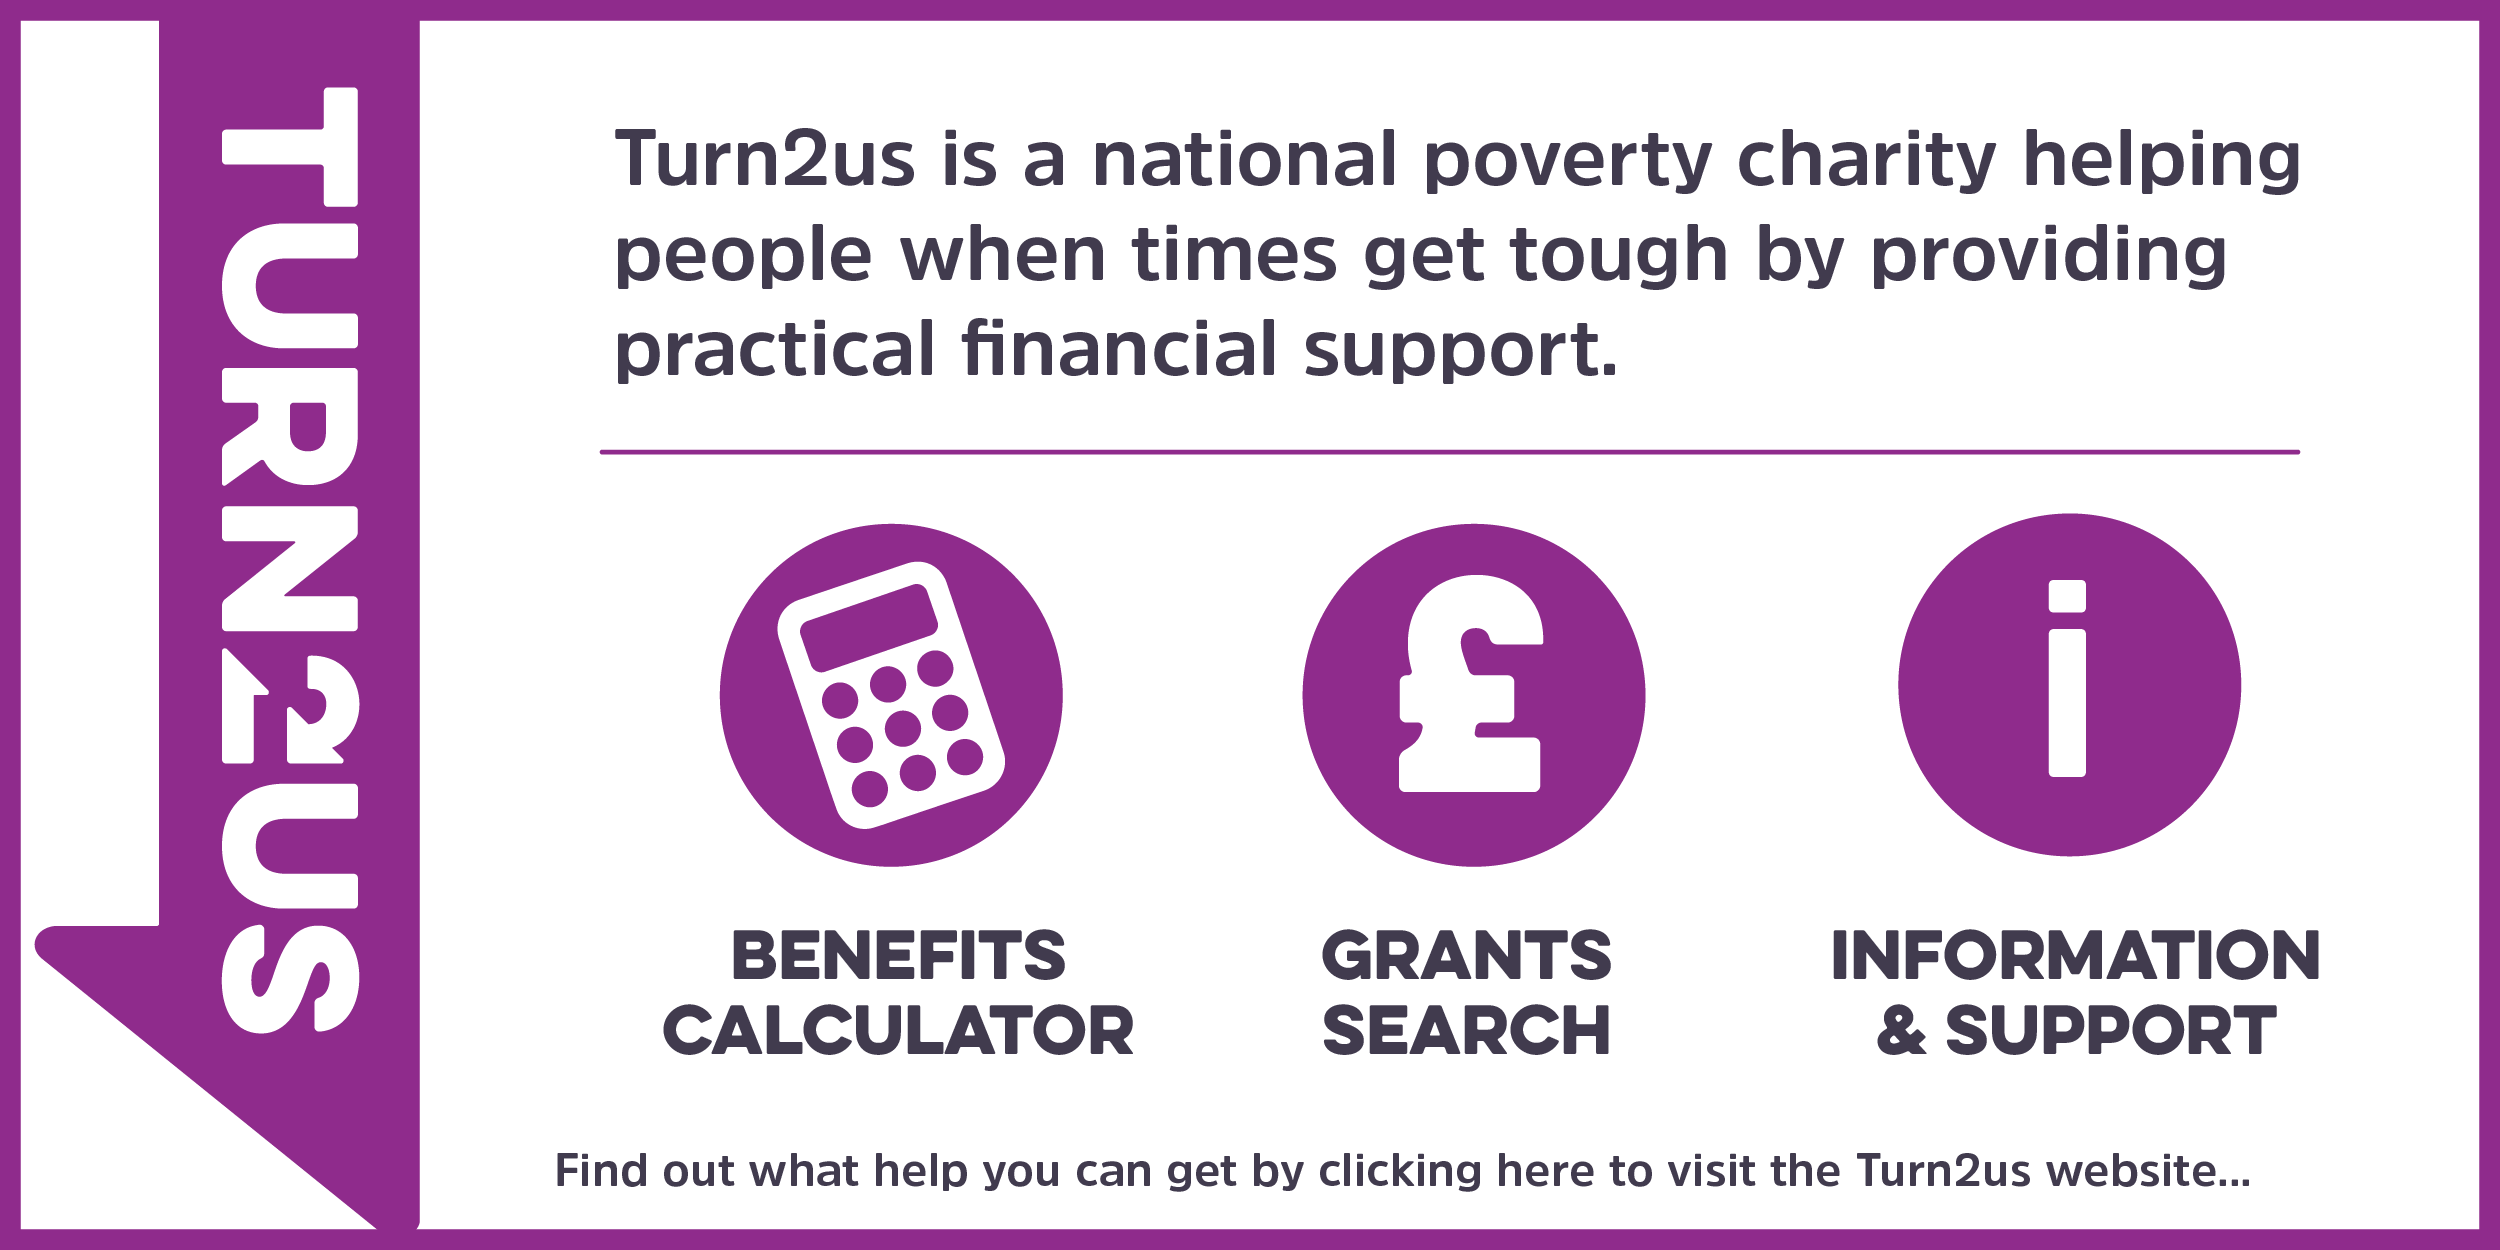 Button to Turn2us website for the benefits calculator, grants search and information and support